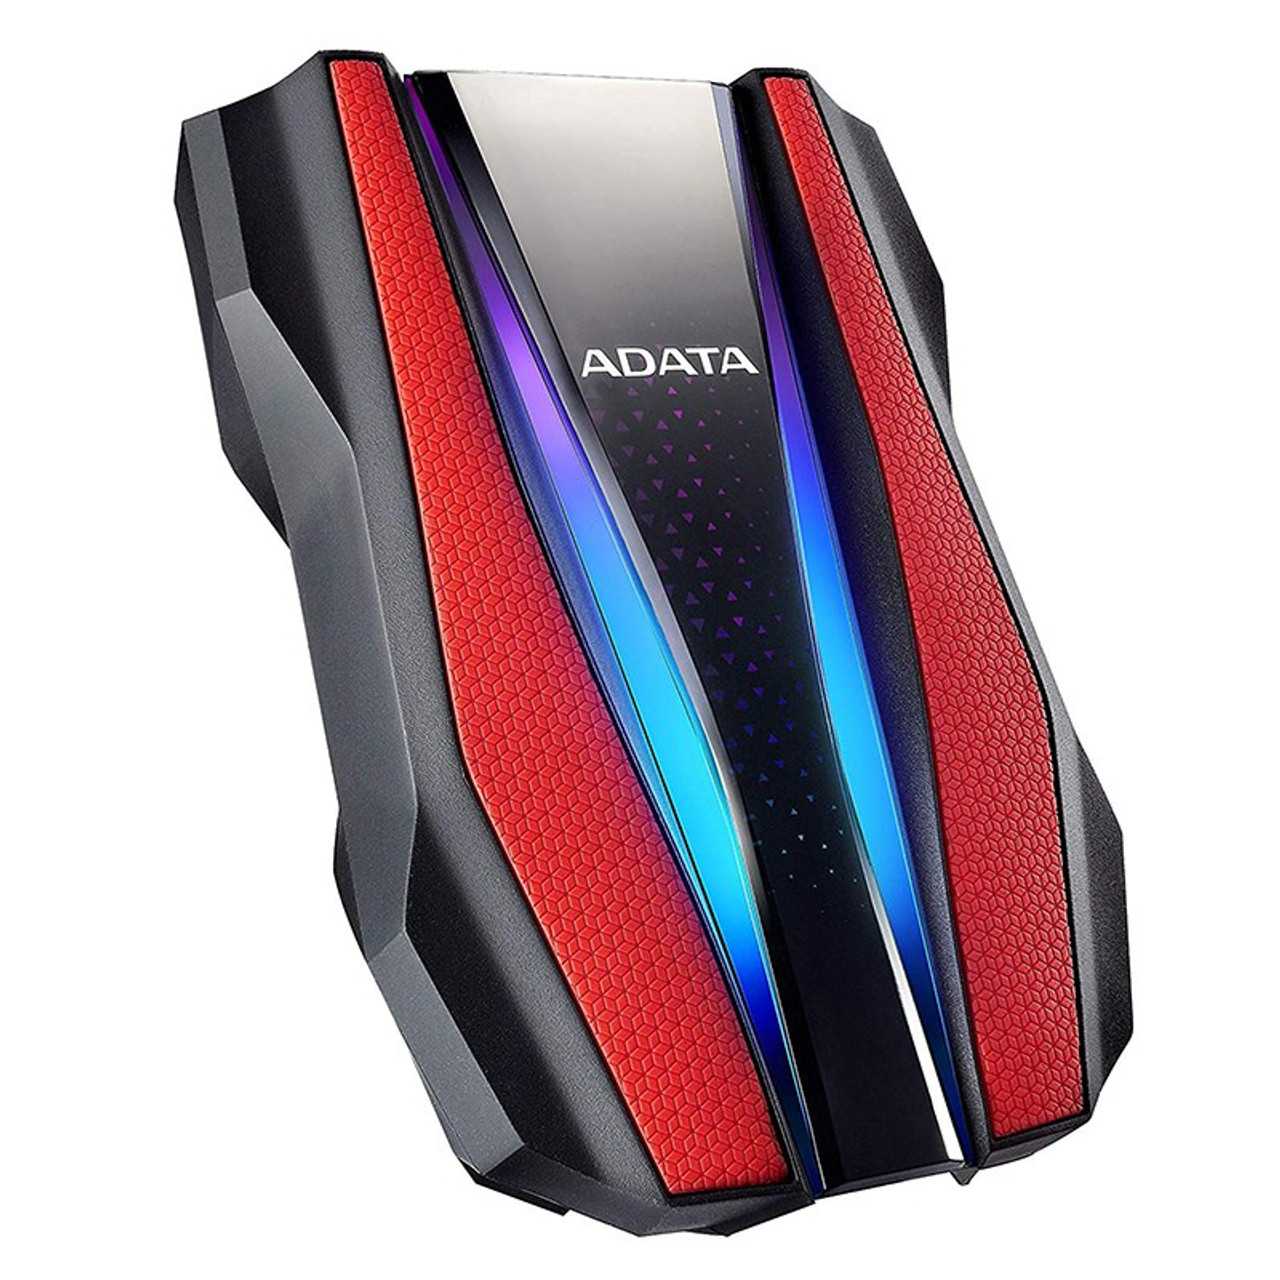 Image for Adata HD770G 2TB USB 3.0 Rugged External Hard Drive - Red CX Computer Superstore